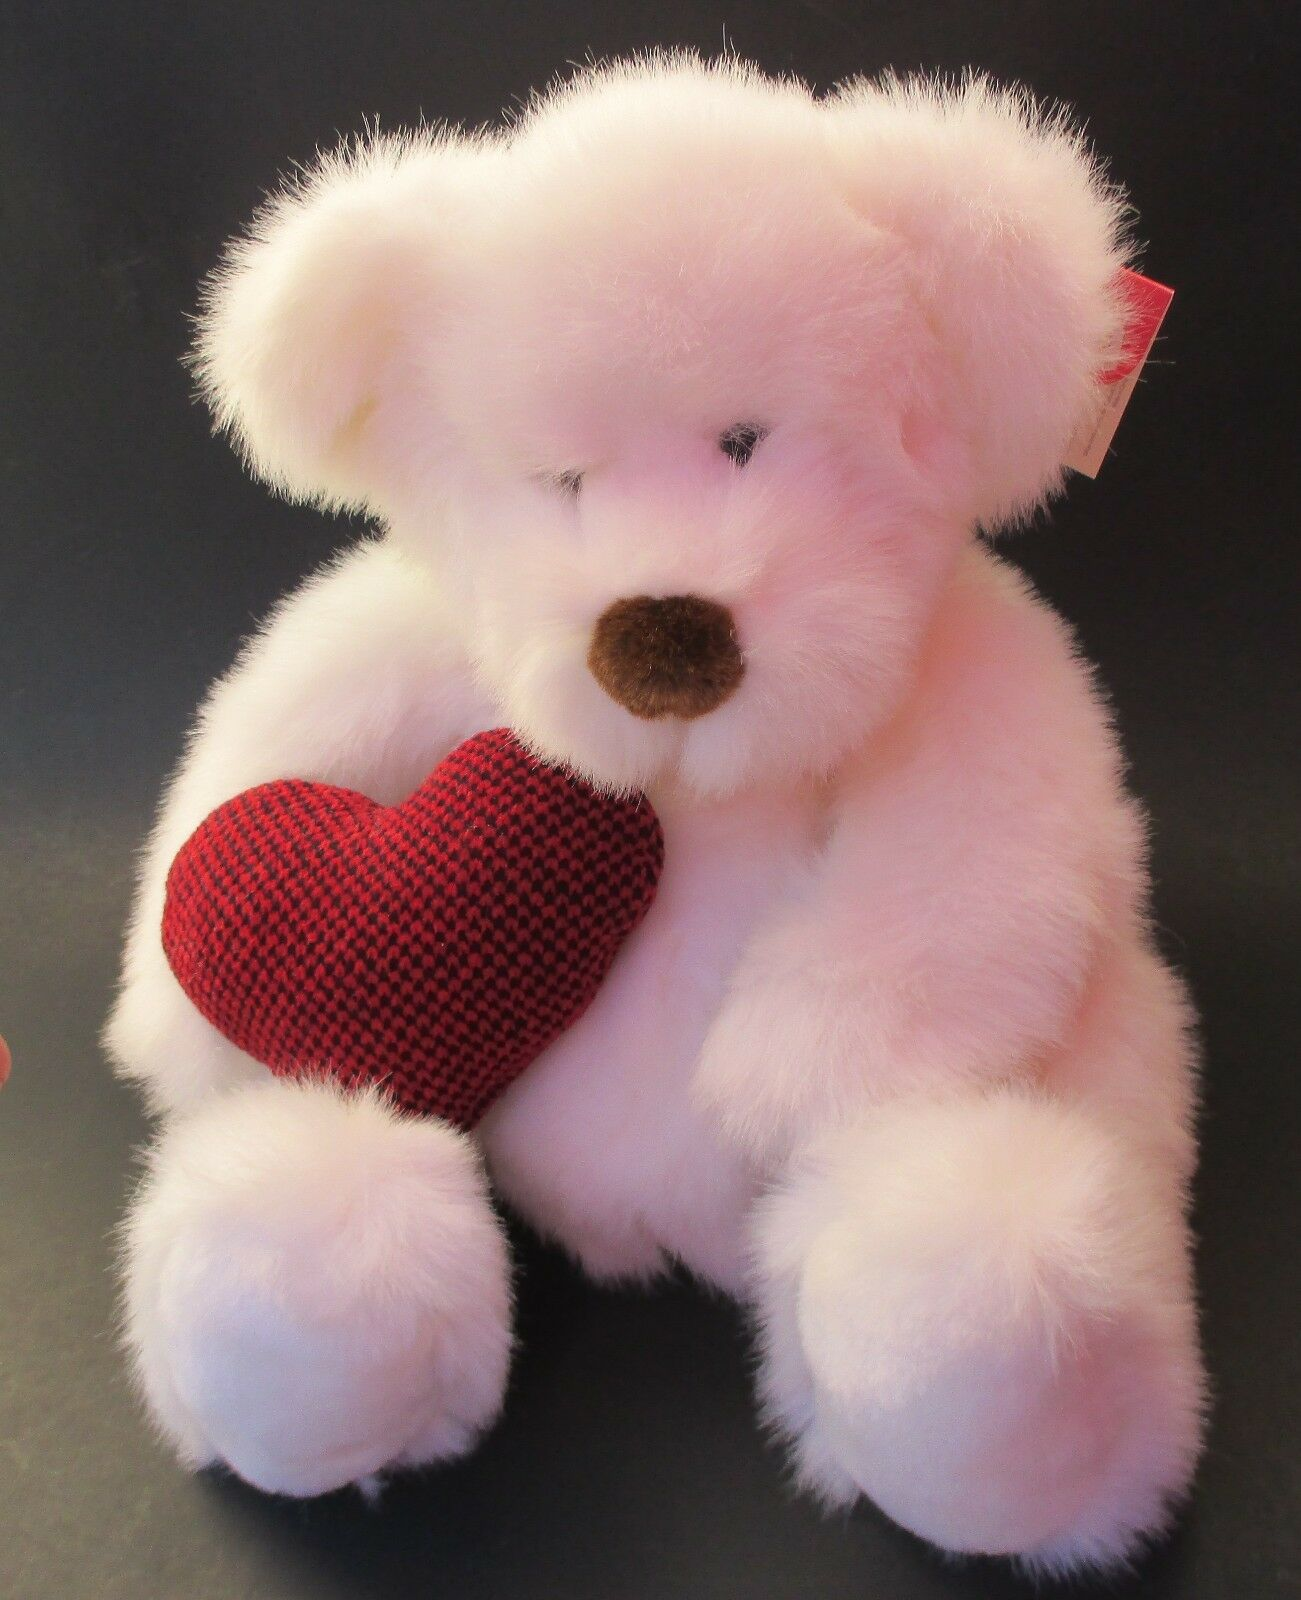 Rb2 large Weiß BEAR HUGS heart pillow RUSS BERRIE PLUSH Teddy Bear love